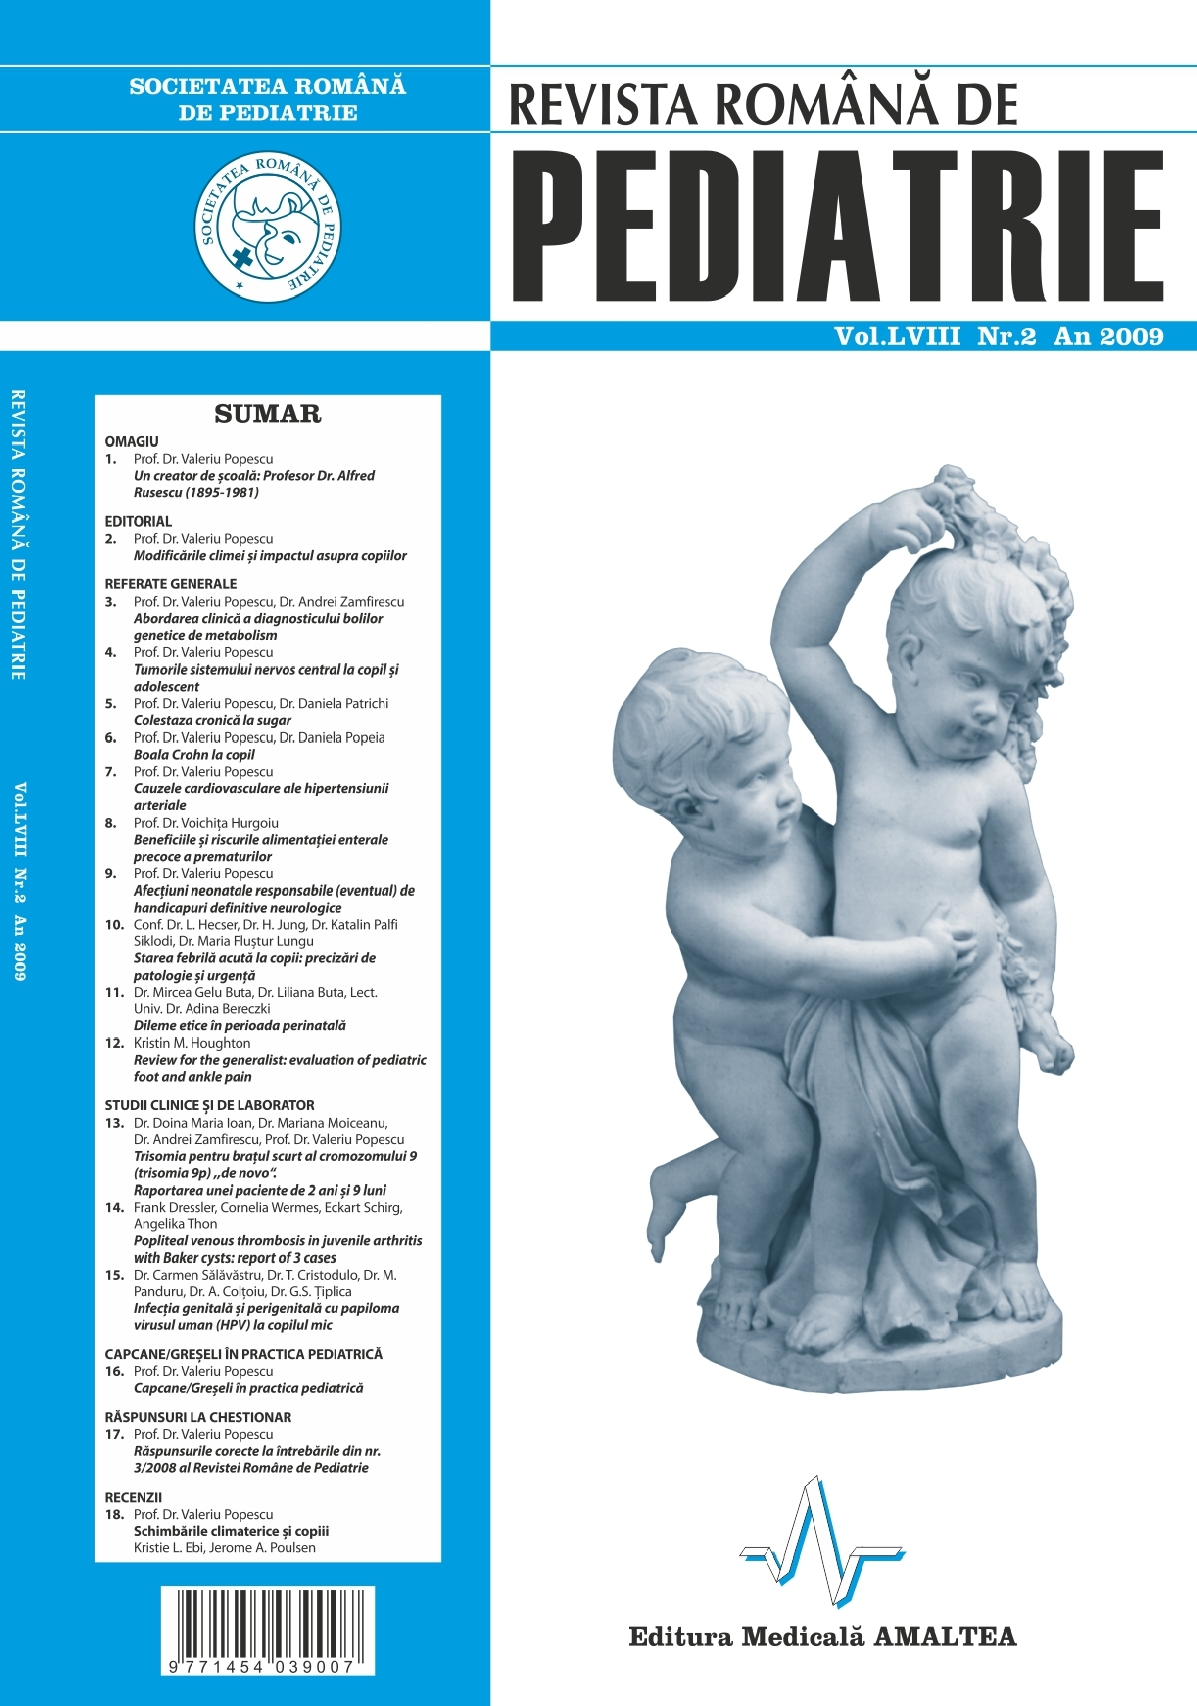 Revista Romana de PEDIATRIE | Volumul LVIII, Nr. 2, An 2009